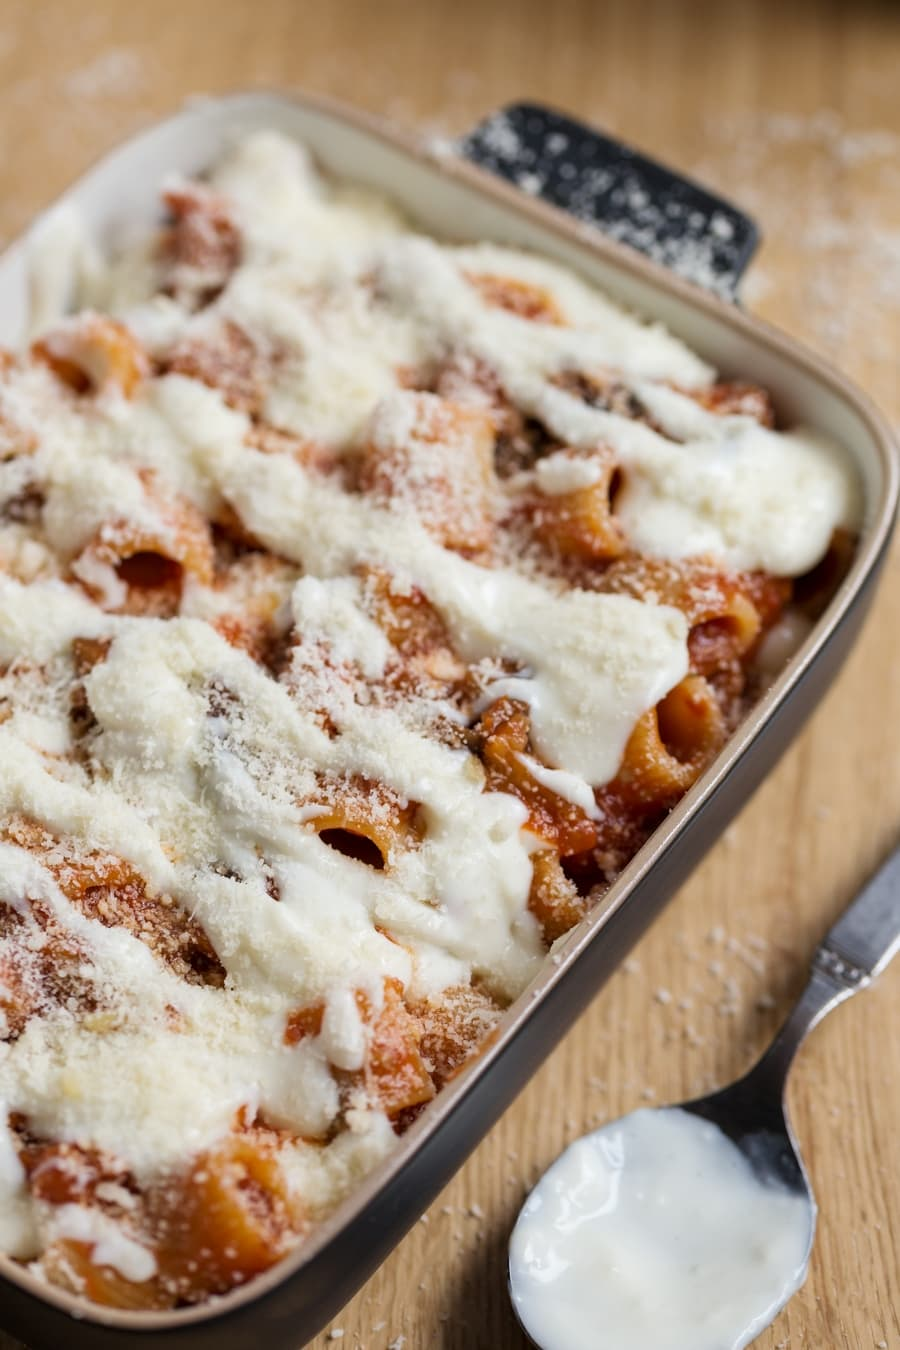 Uncooked eggplant pasta bake in casserole.